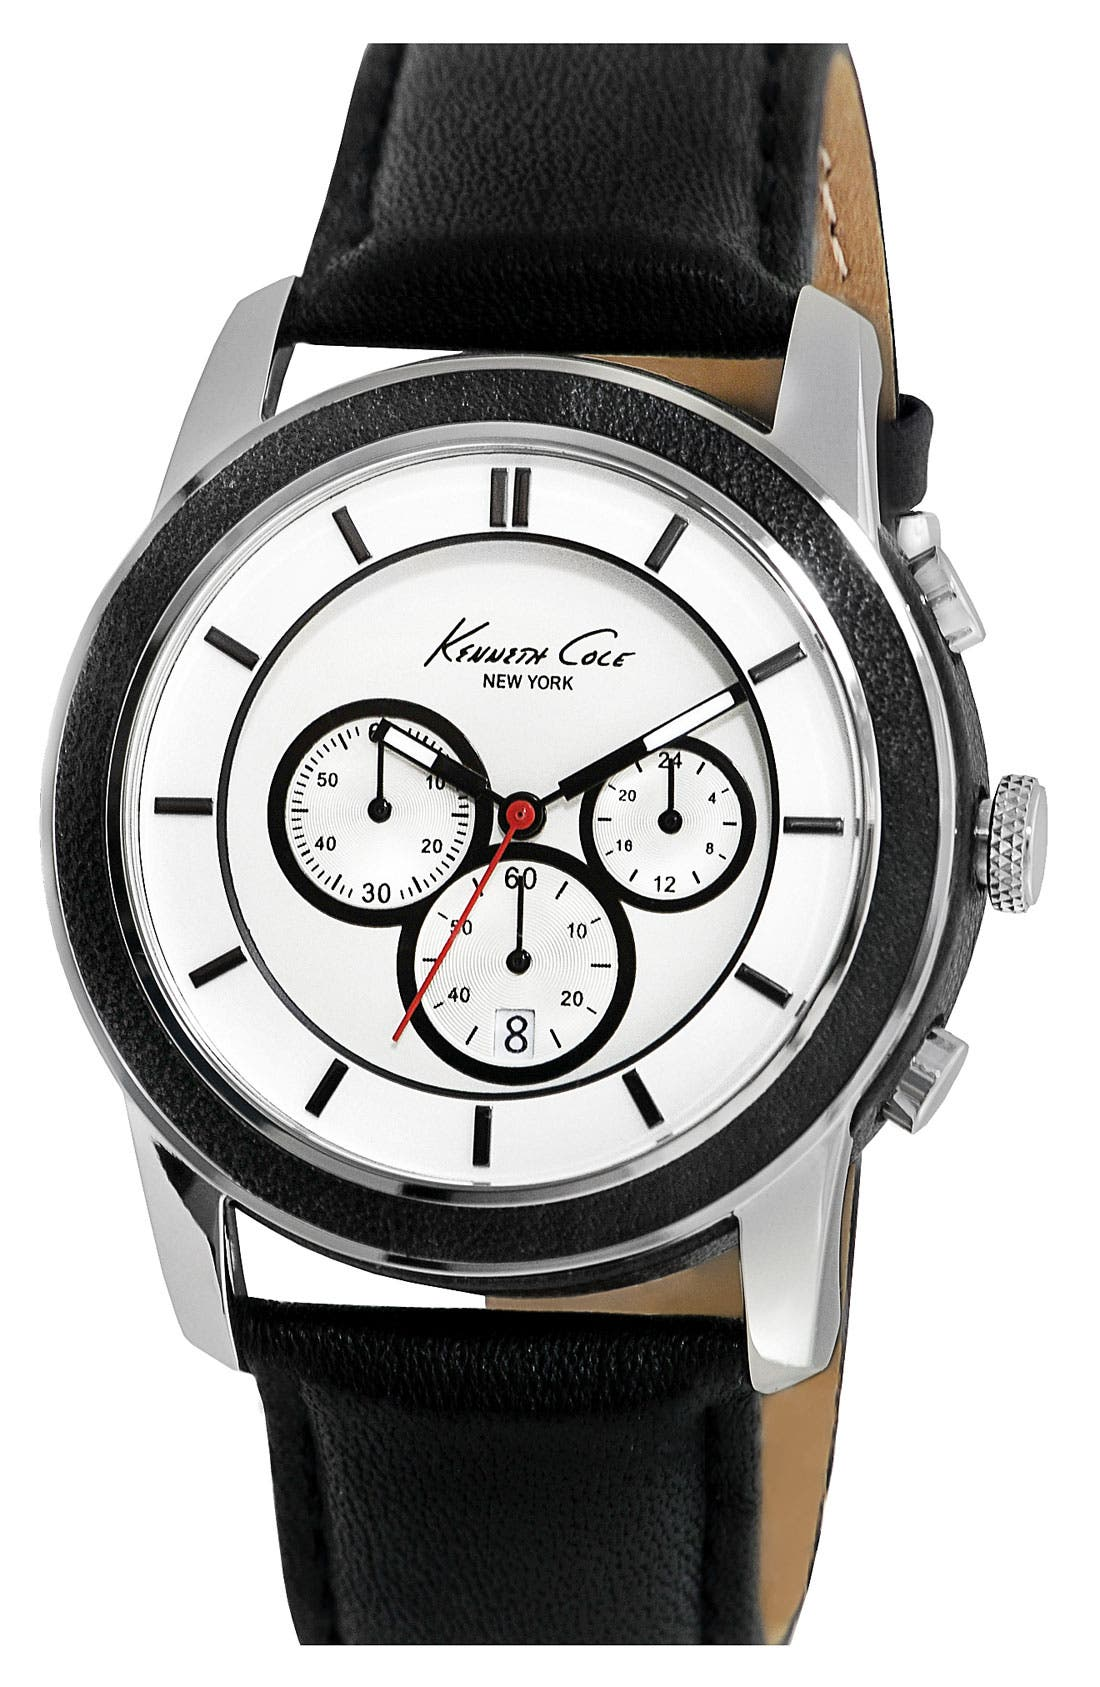 Main Image - Kenneth Cole New York Chronograph Leather Strap Watch